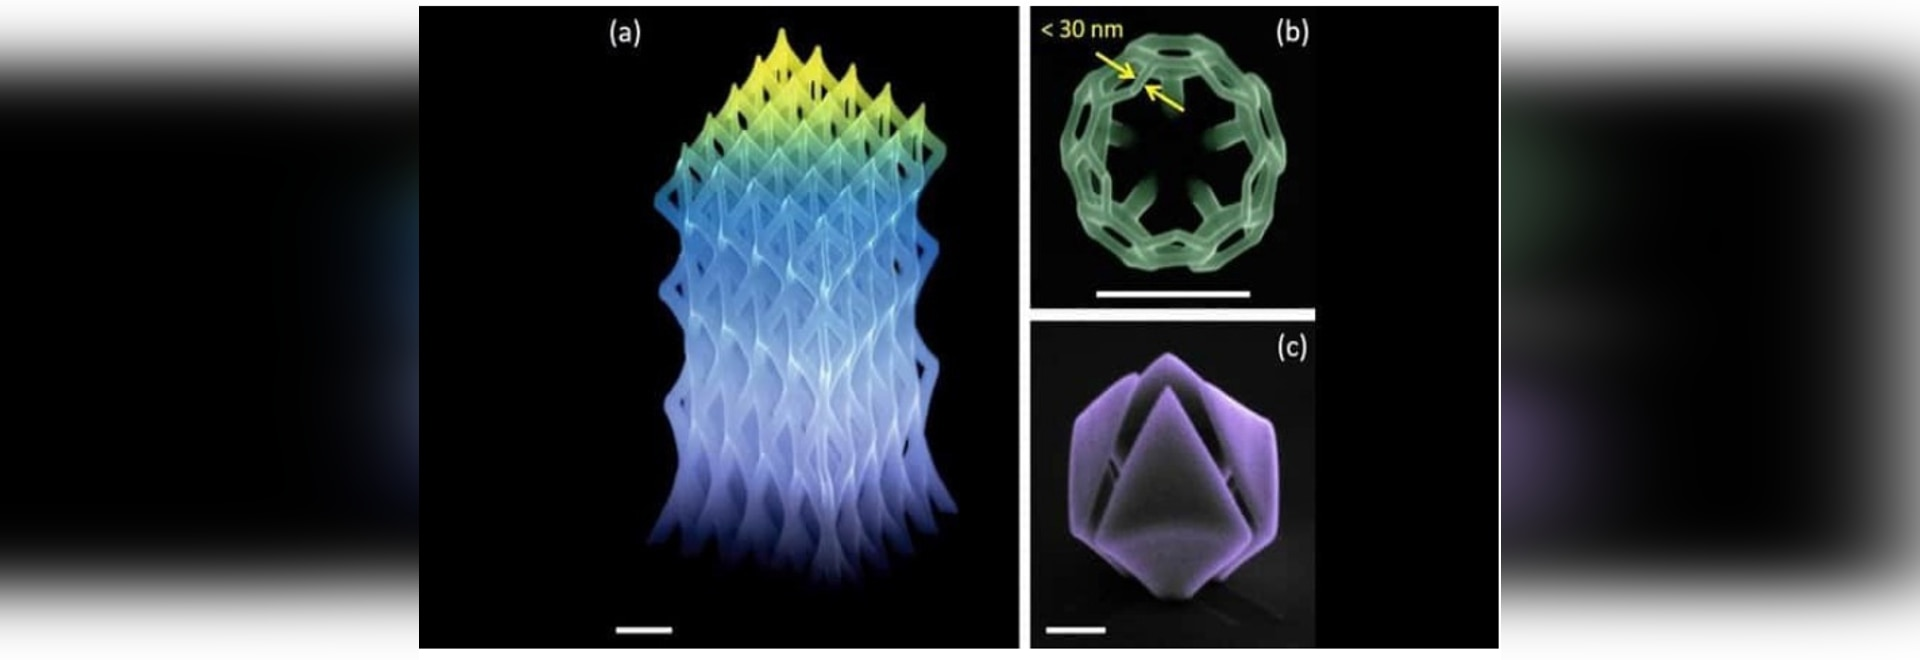 Examples from the three-dimensional printed nanoworld show the complexity (a), achievable structure sizes (b), and the path from meshed toward closed 3D surfaces (c). All images are re-colored scan...